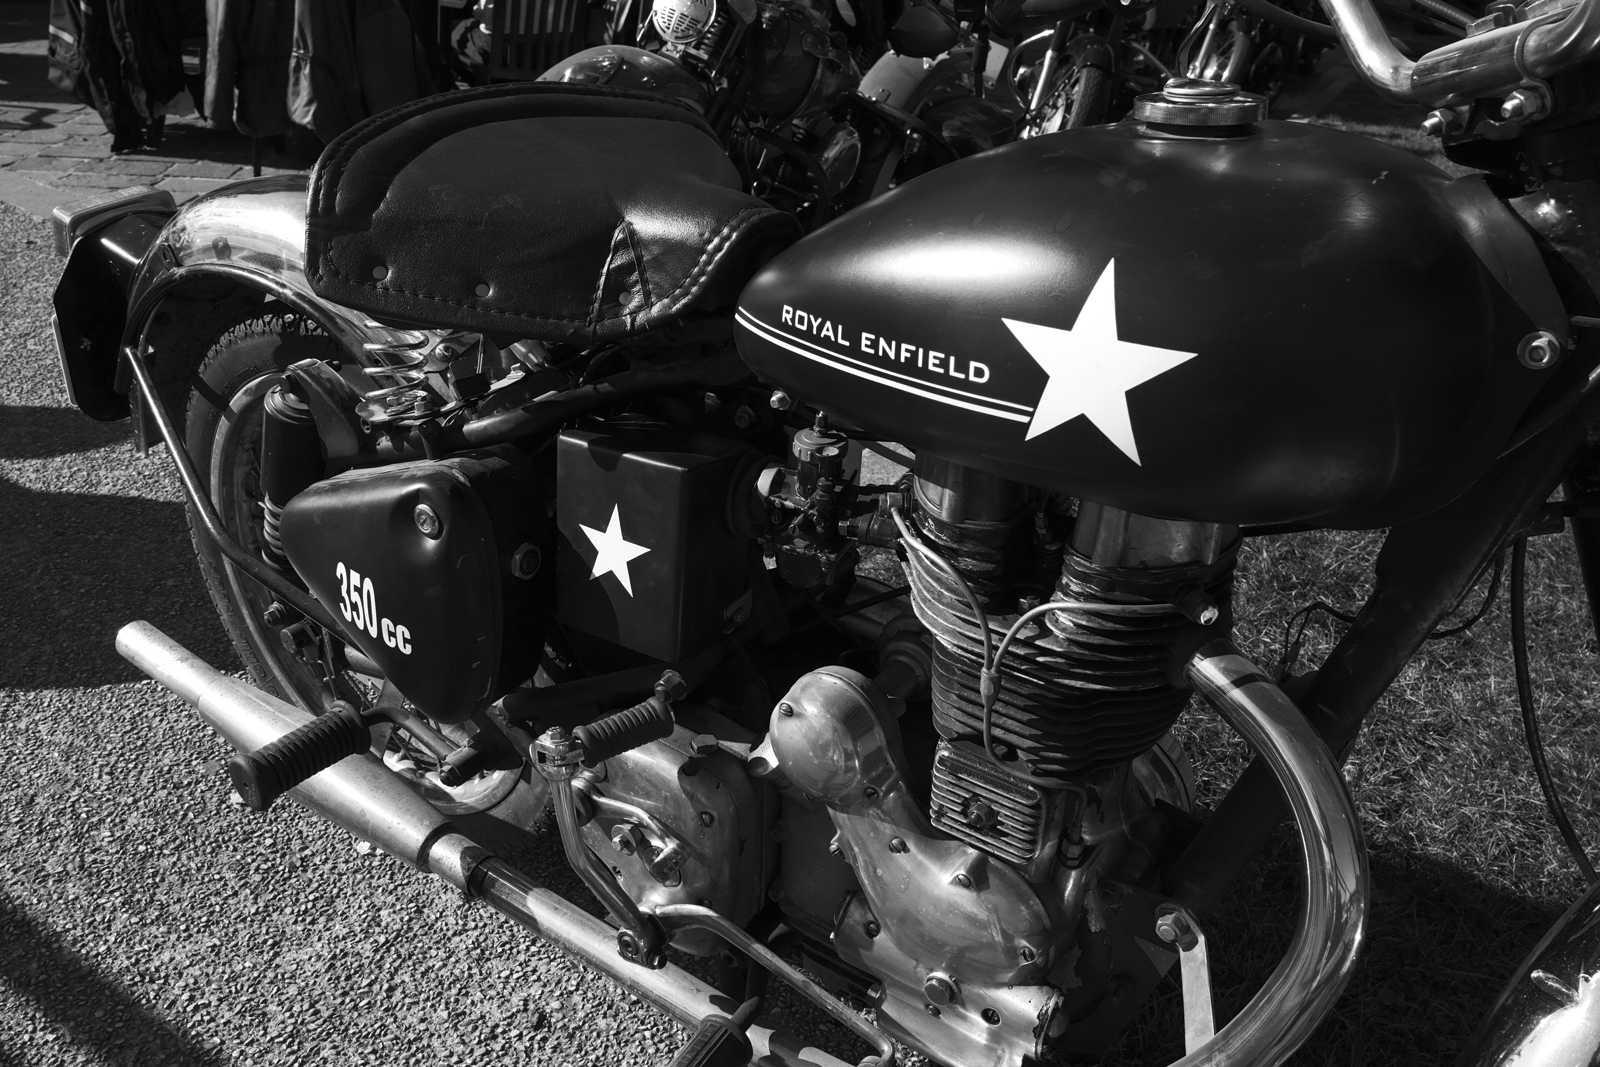 Royal Enfield BW